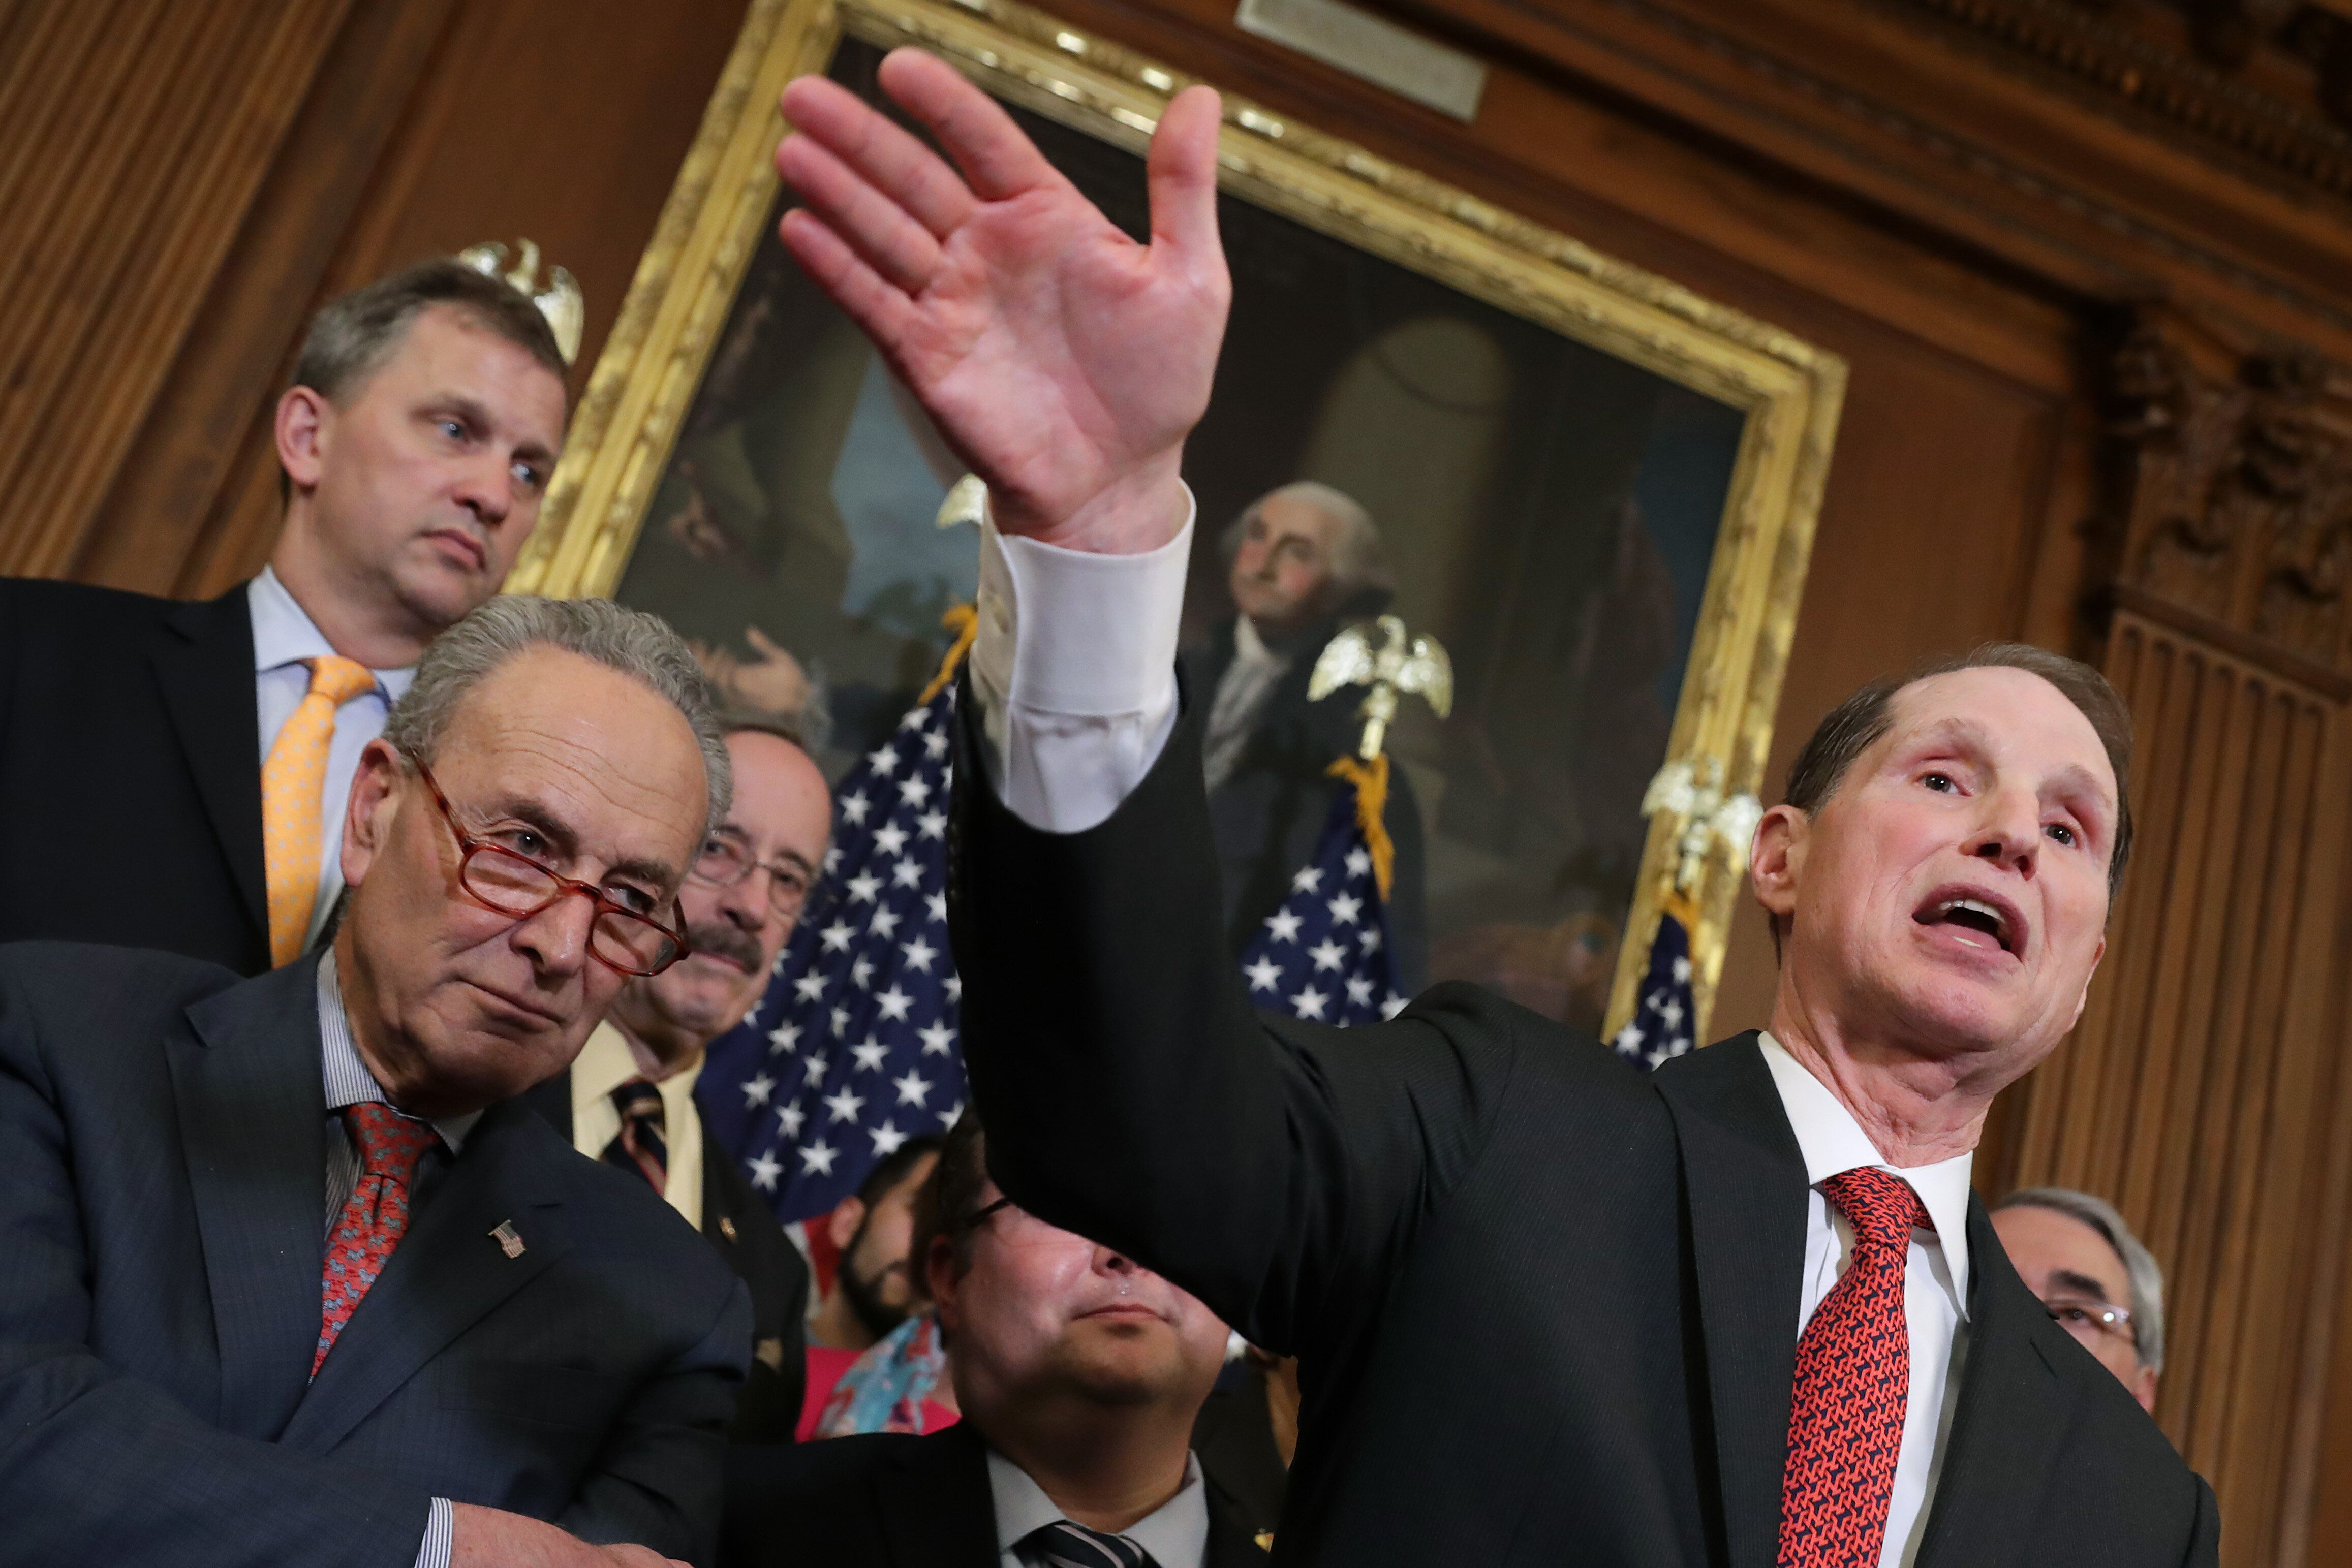 Sens. Ron Wyden (D-Ore.) and Chuck Schumer (D-N.Y.) lead a rally ahead of a House vote on health care and prescription drug l